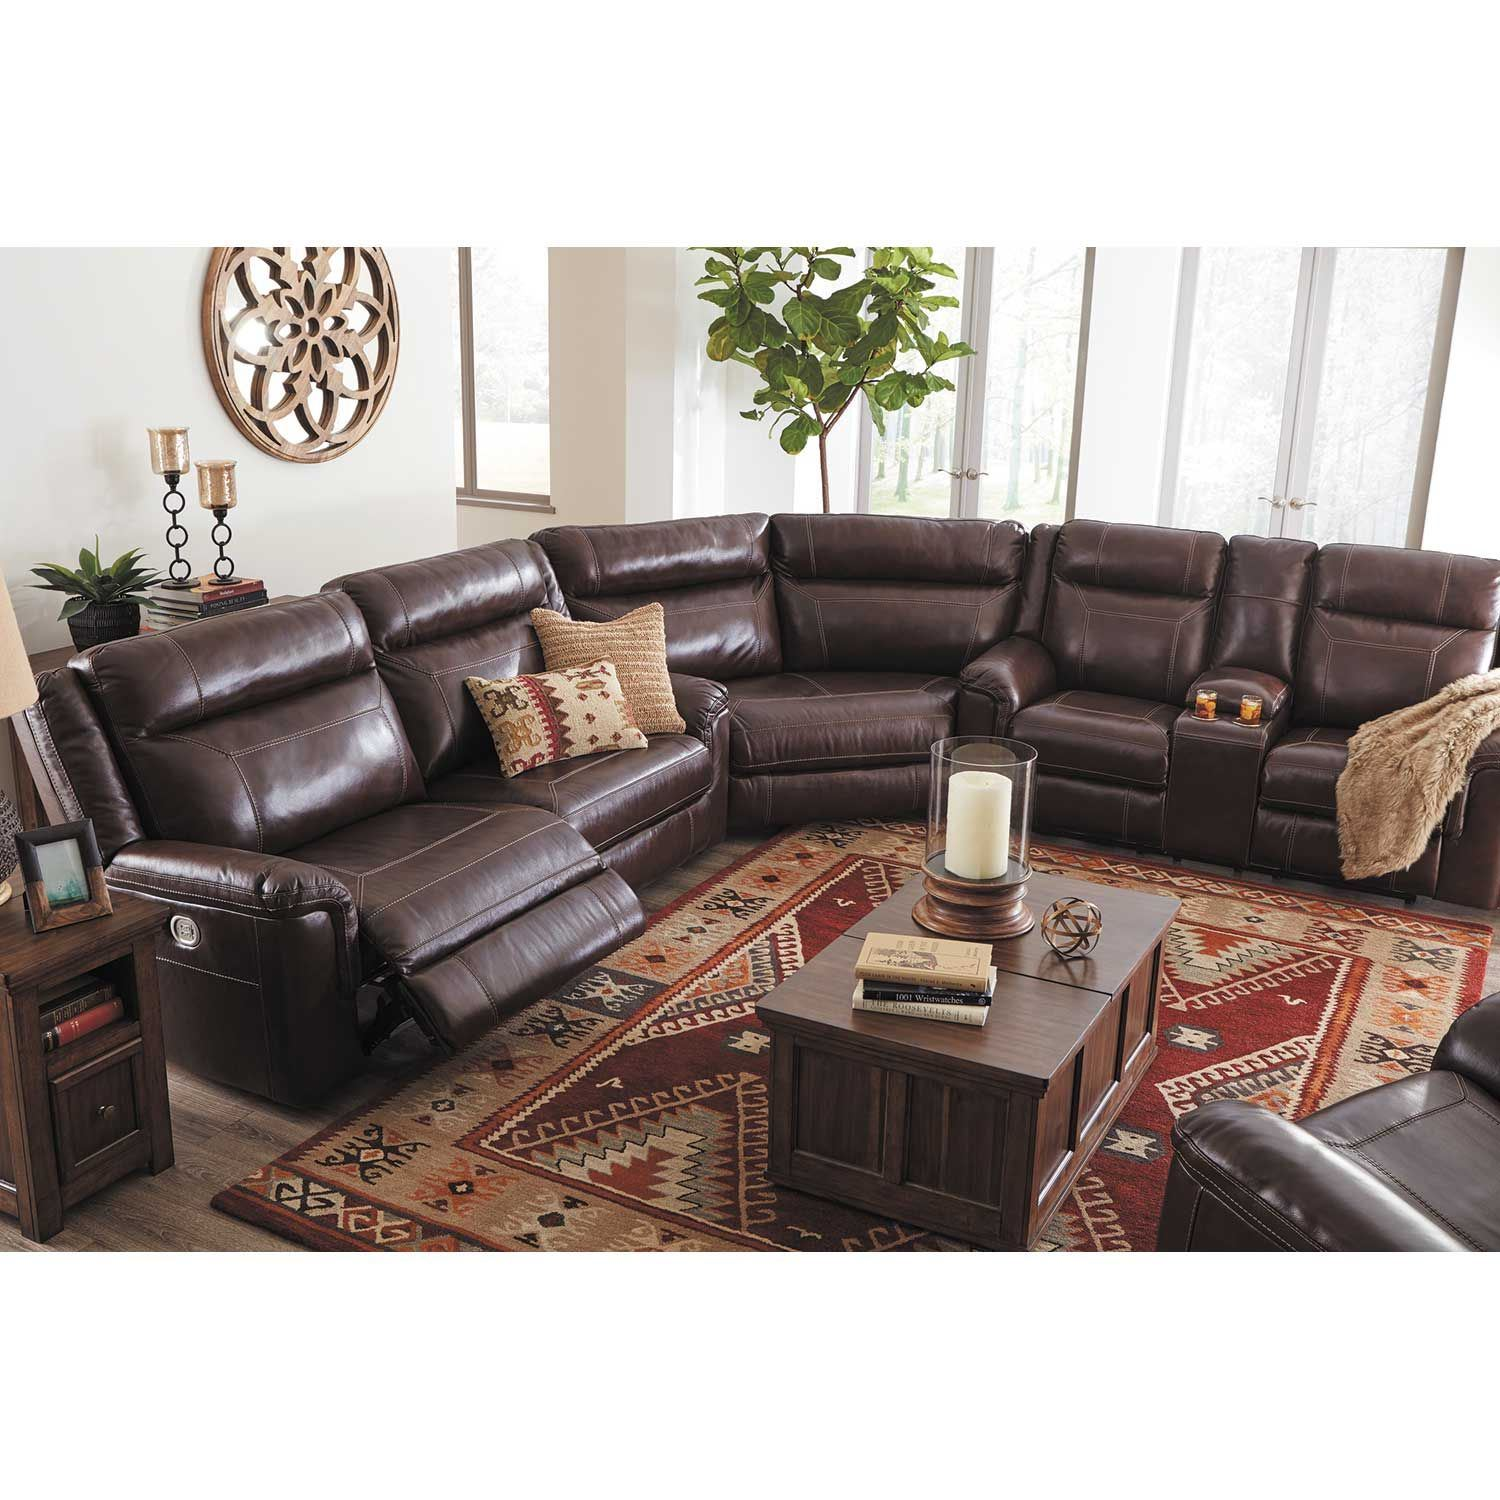 Ashley Furniture Manufacturers: Wyline 3 Piece Power Reclining Sectional